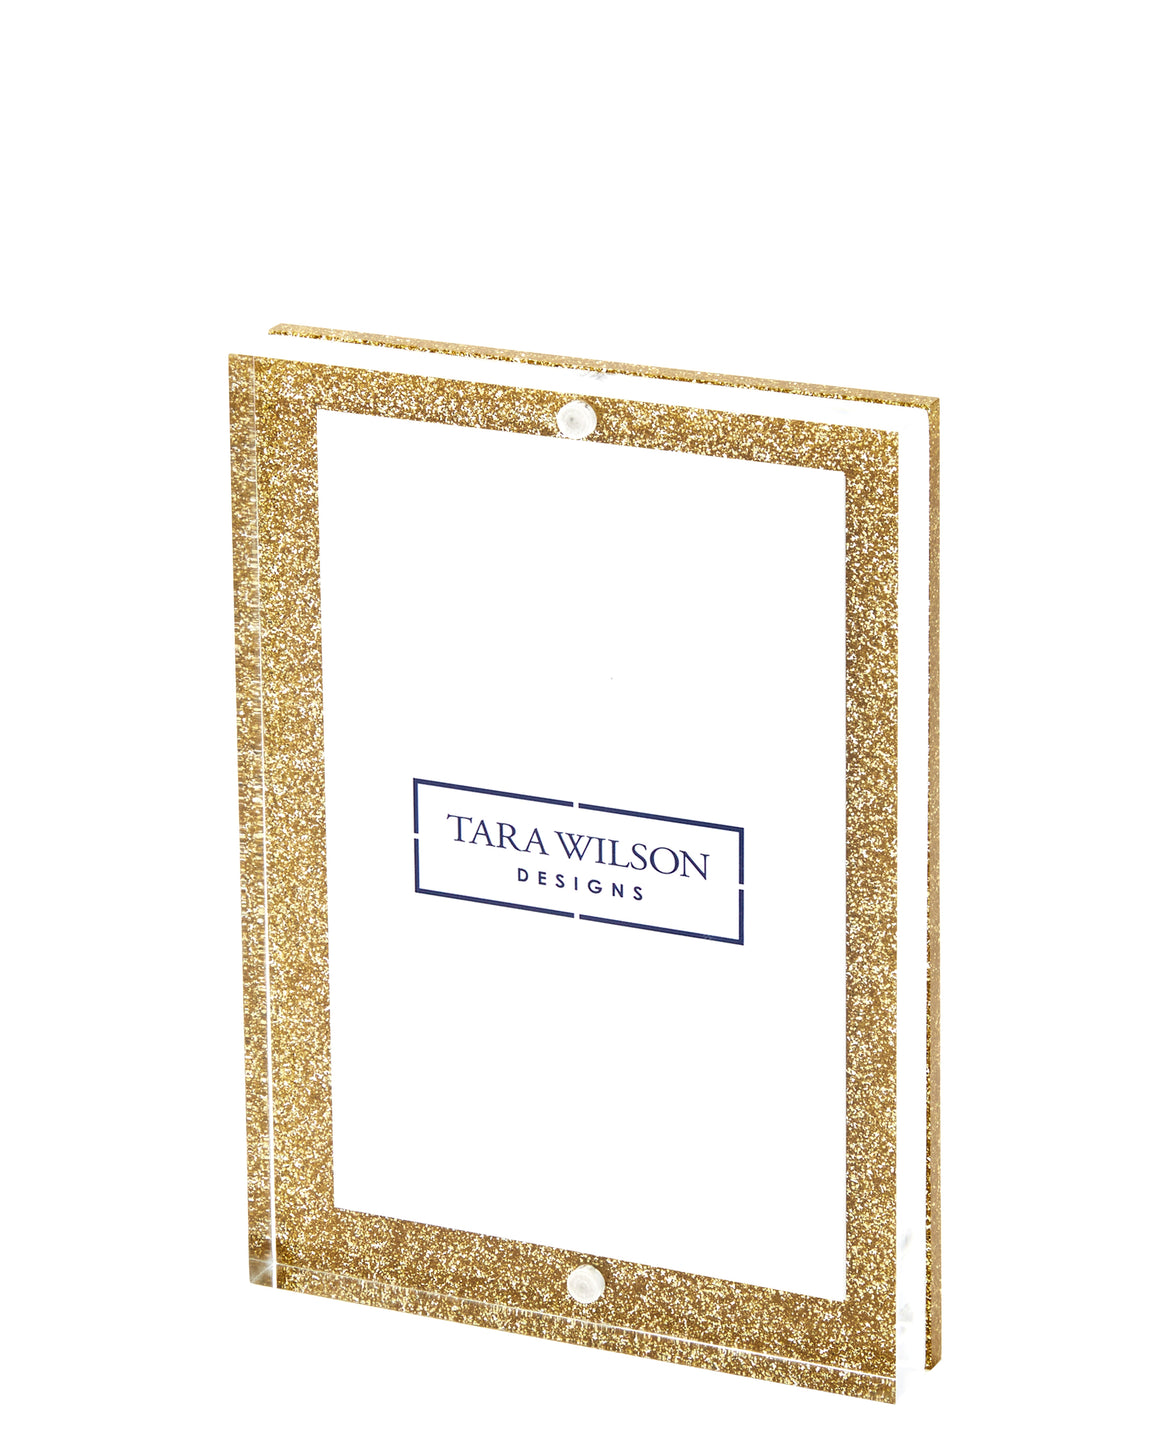 4 x 6 gold glitter acrylic / lucite frame magnets